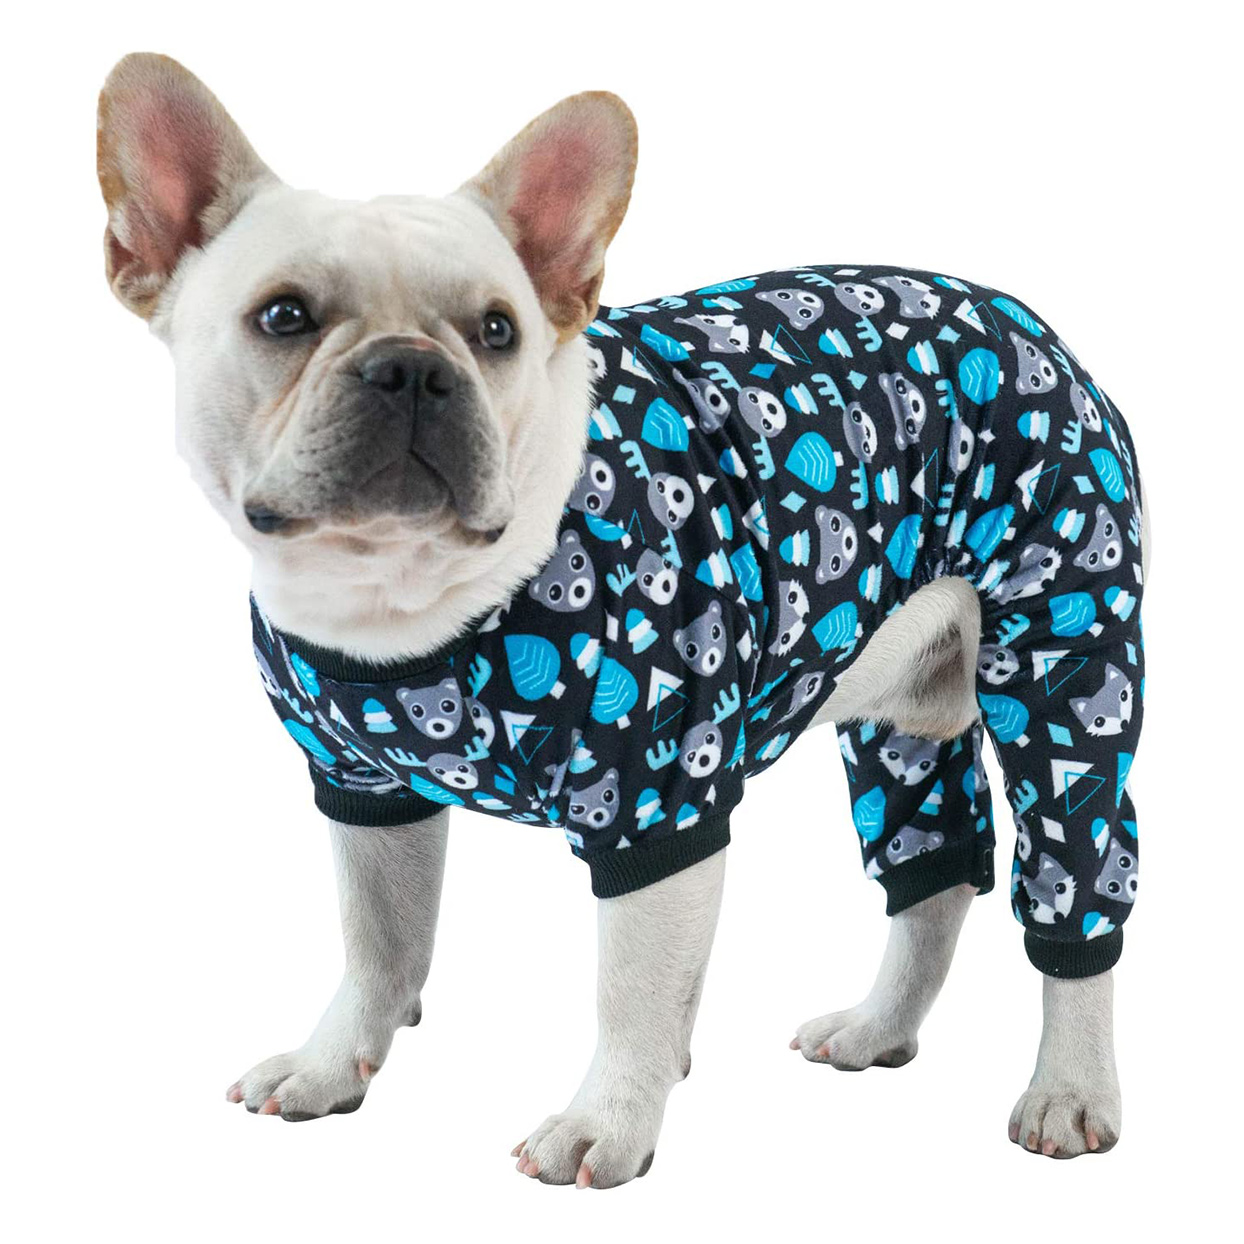 Dog wearing a CuteBone Onesie Pajamas for Puppies on a white background